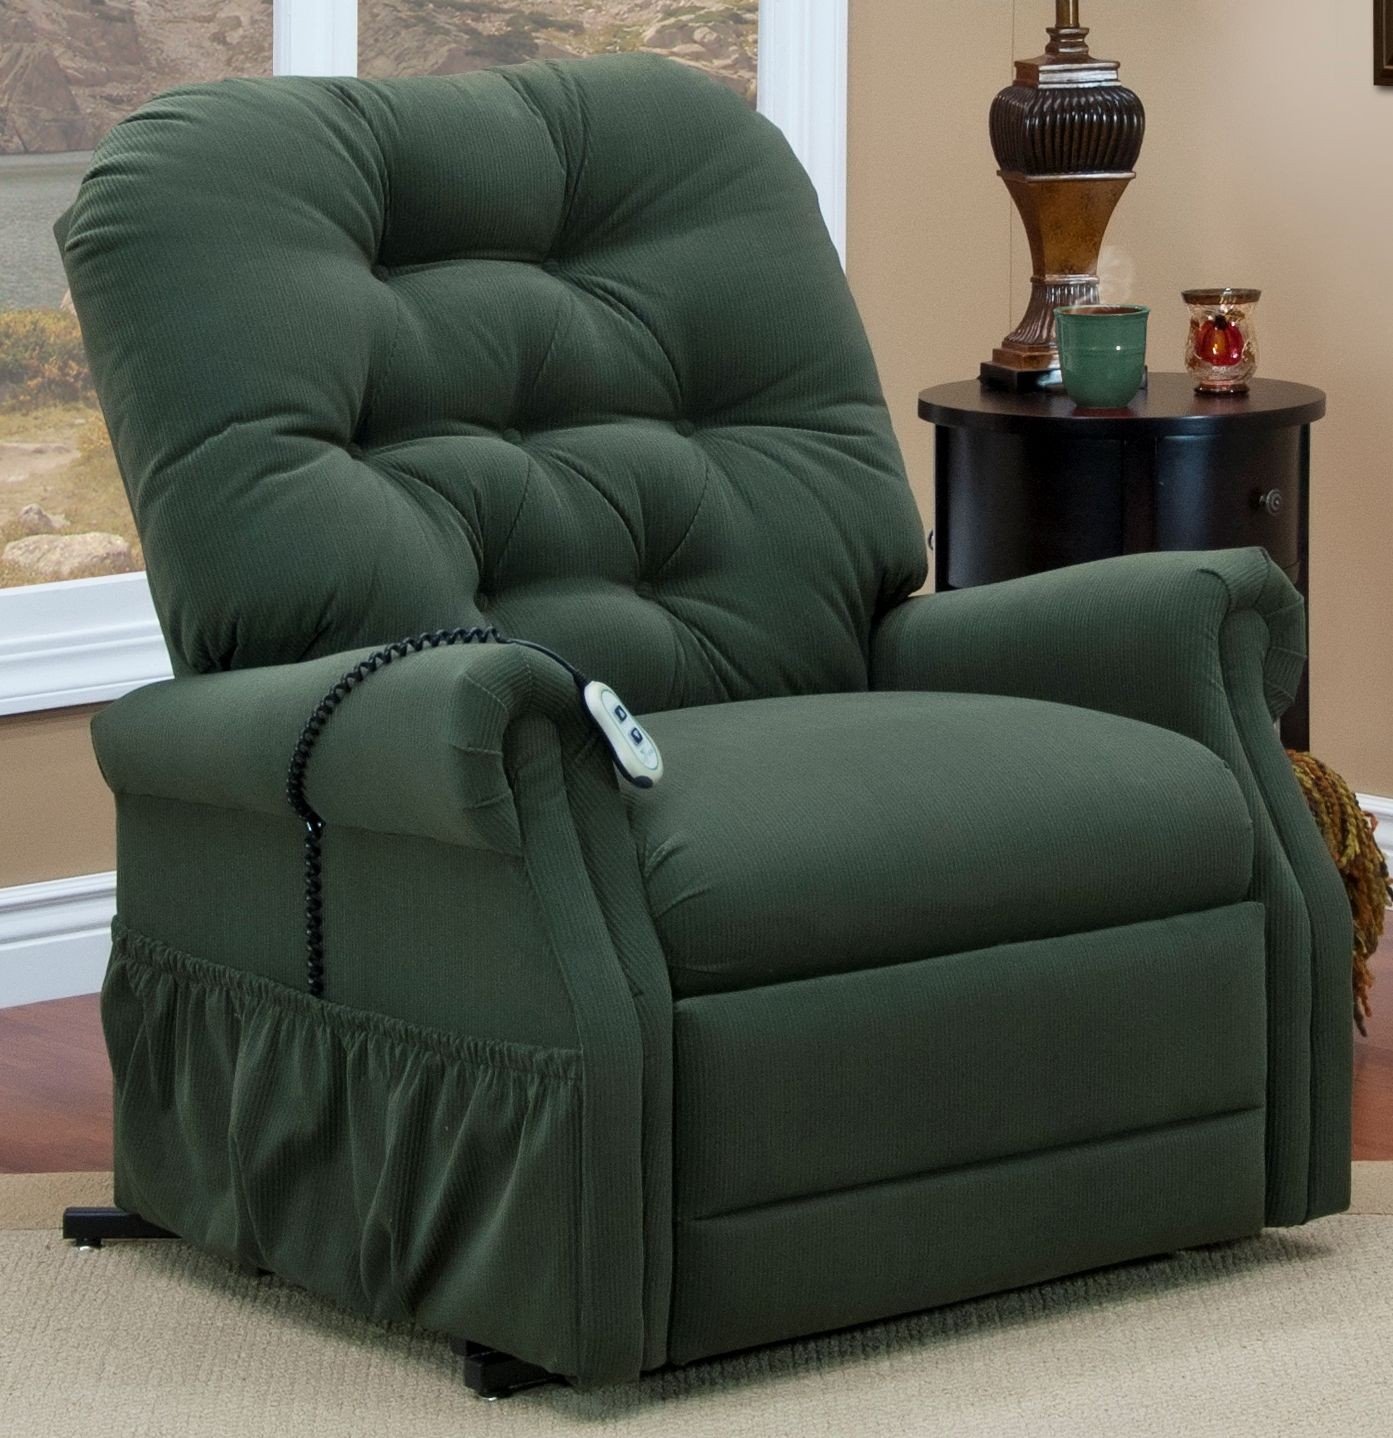 Med Lift Chairs Aaron Hunter Tufted Two Way Reclining Lift Chair From Med